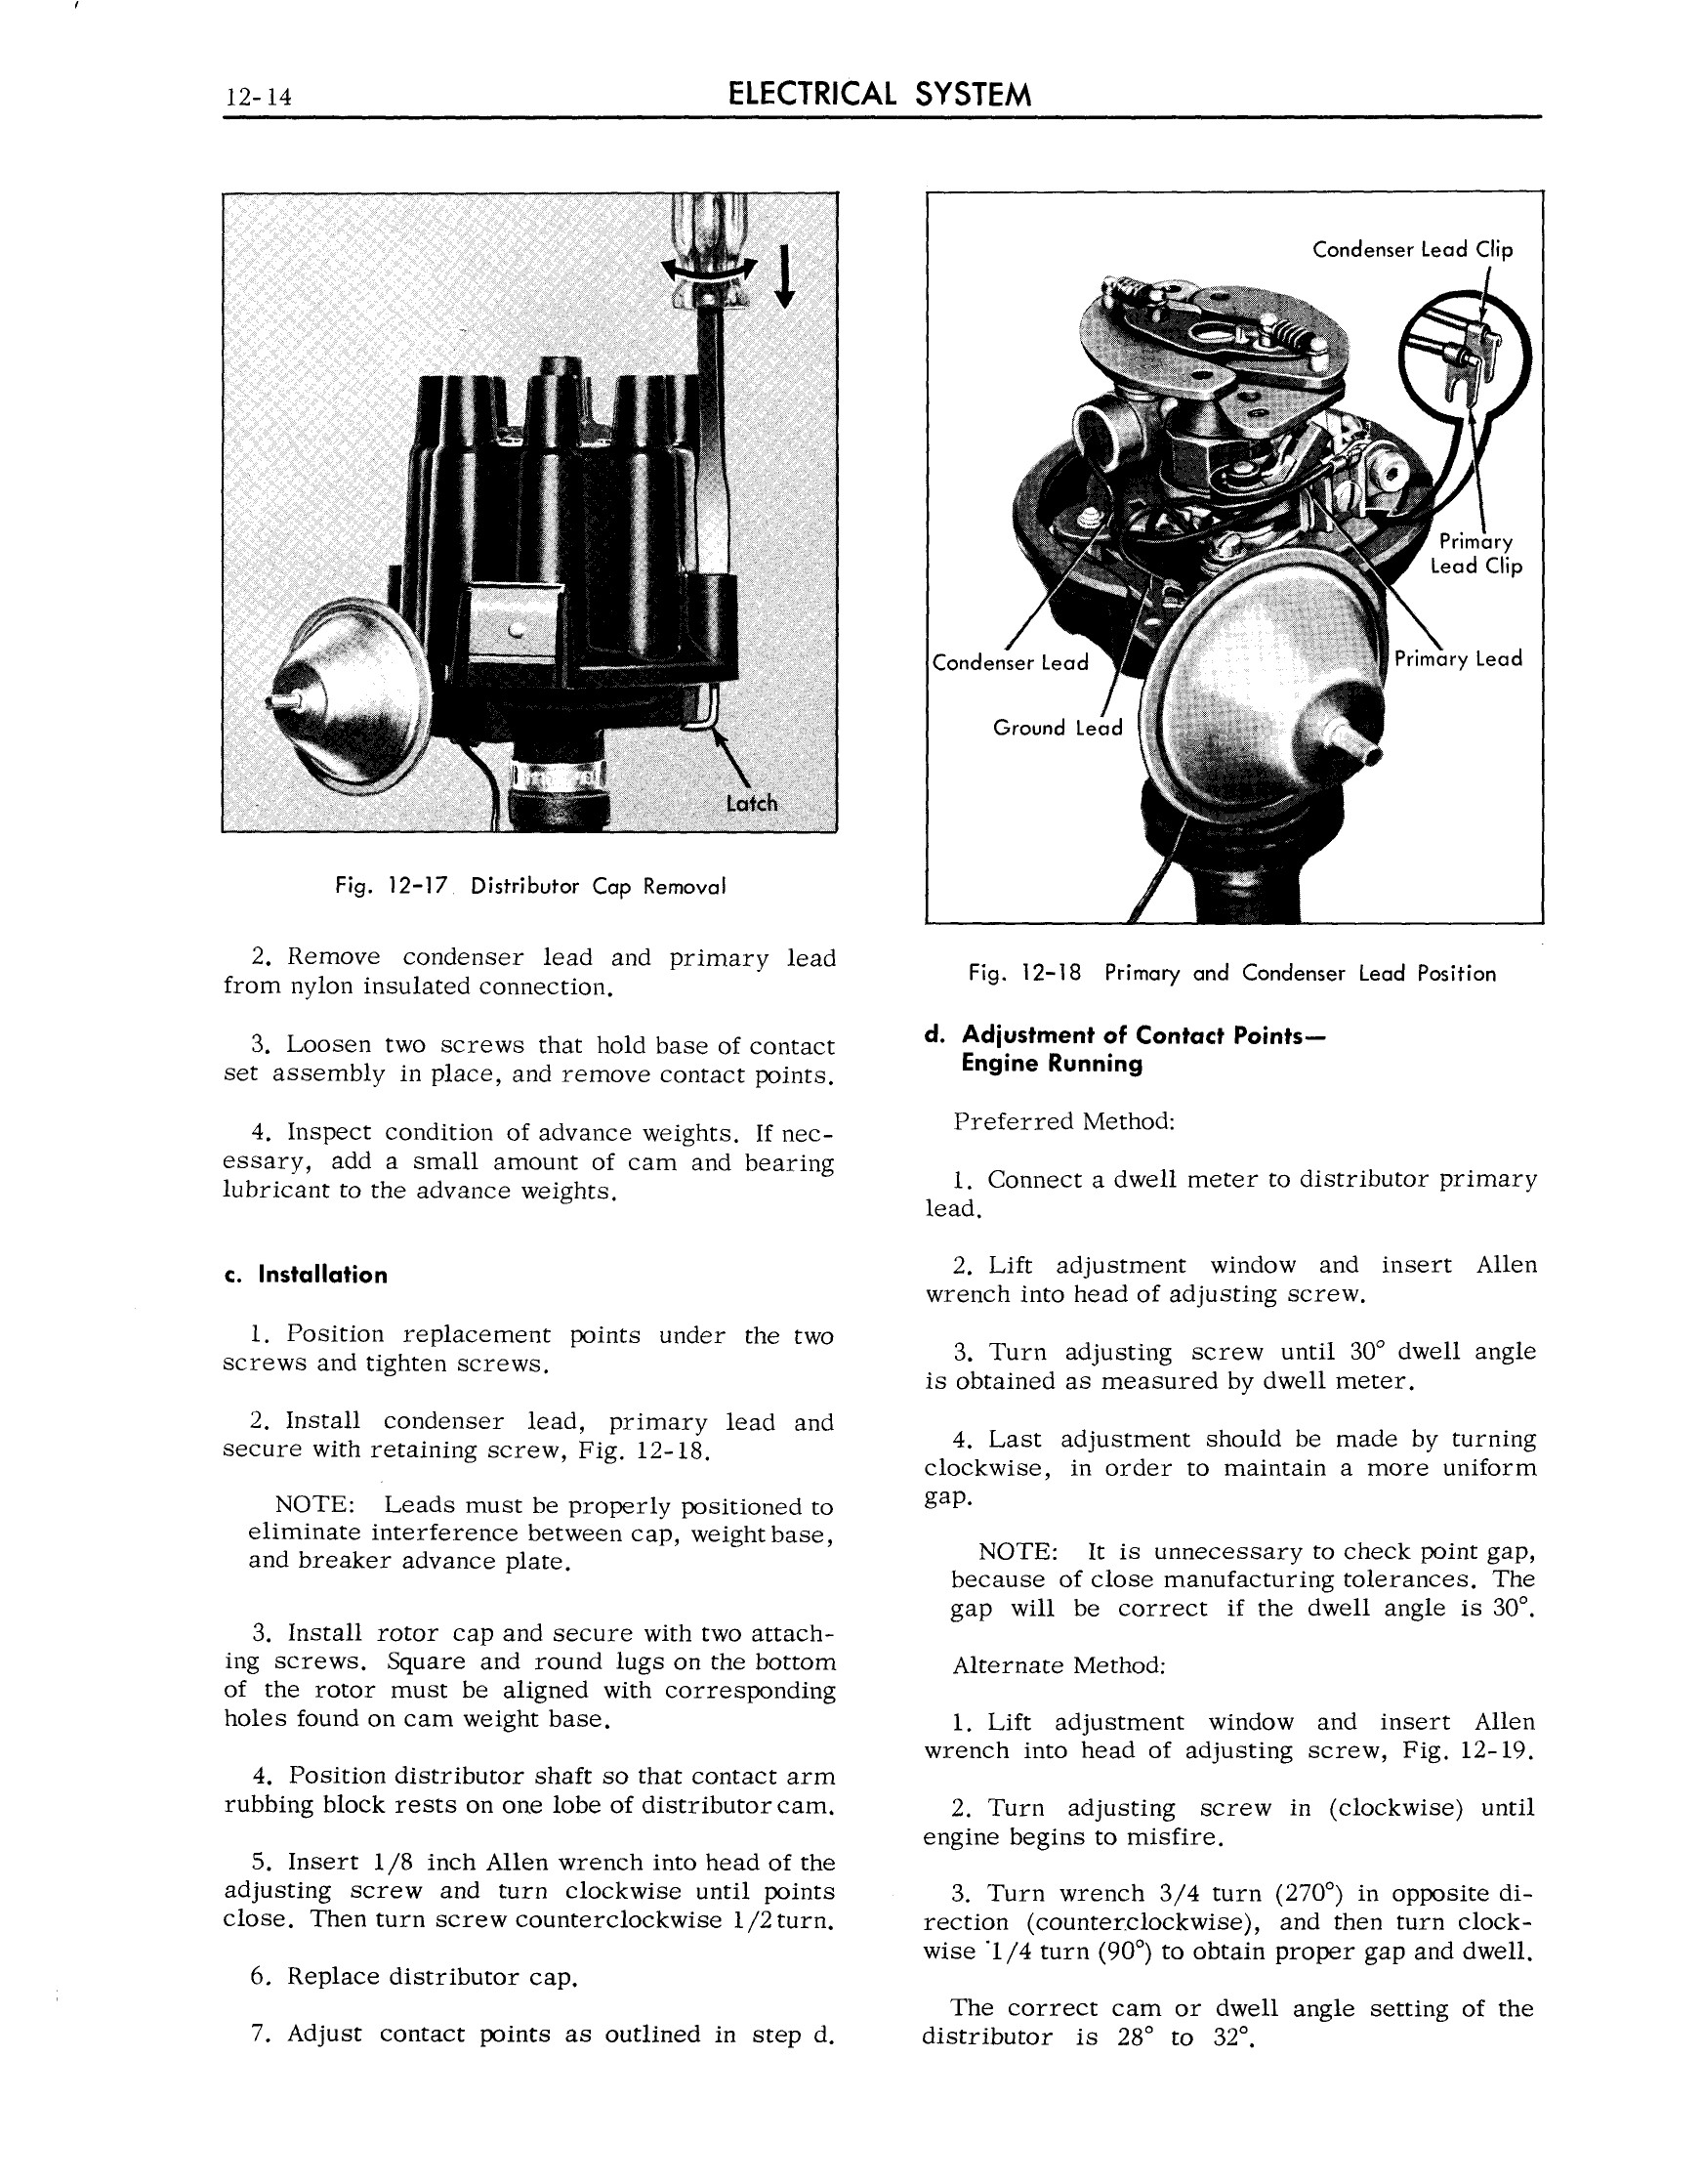 1963 Cadillac Shop Manual- Electrical System Page 14 of 100